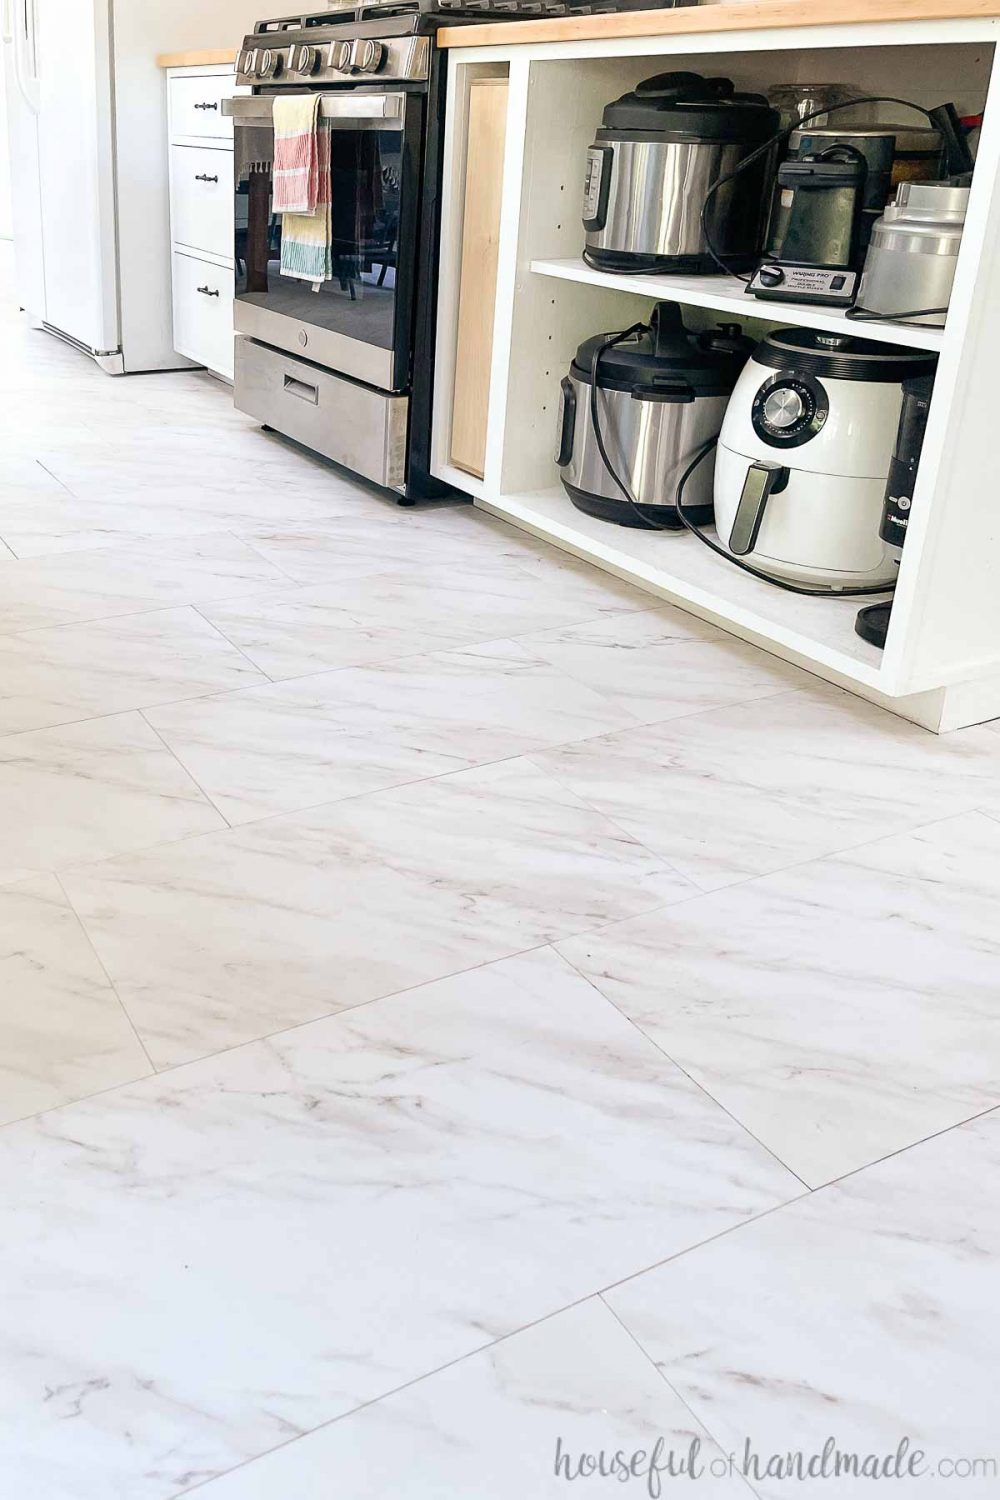 Peel and stick vinyl tiles that look like white marble with gray veining on the floor in a DIY kitchen.